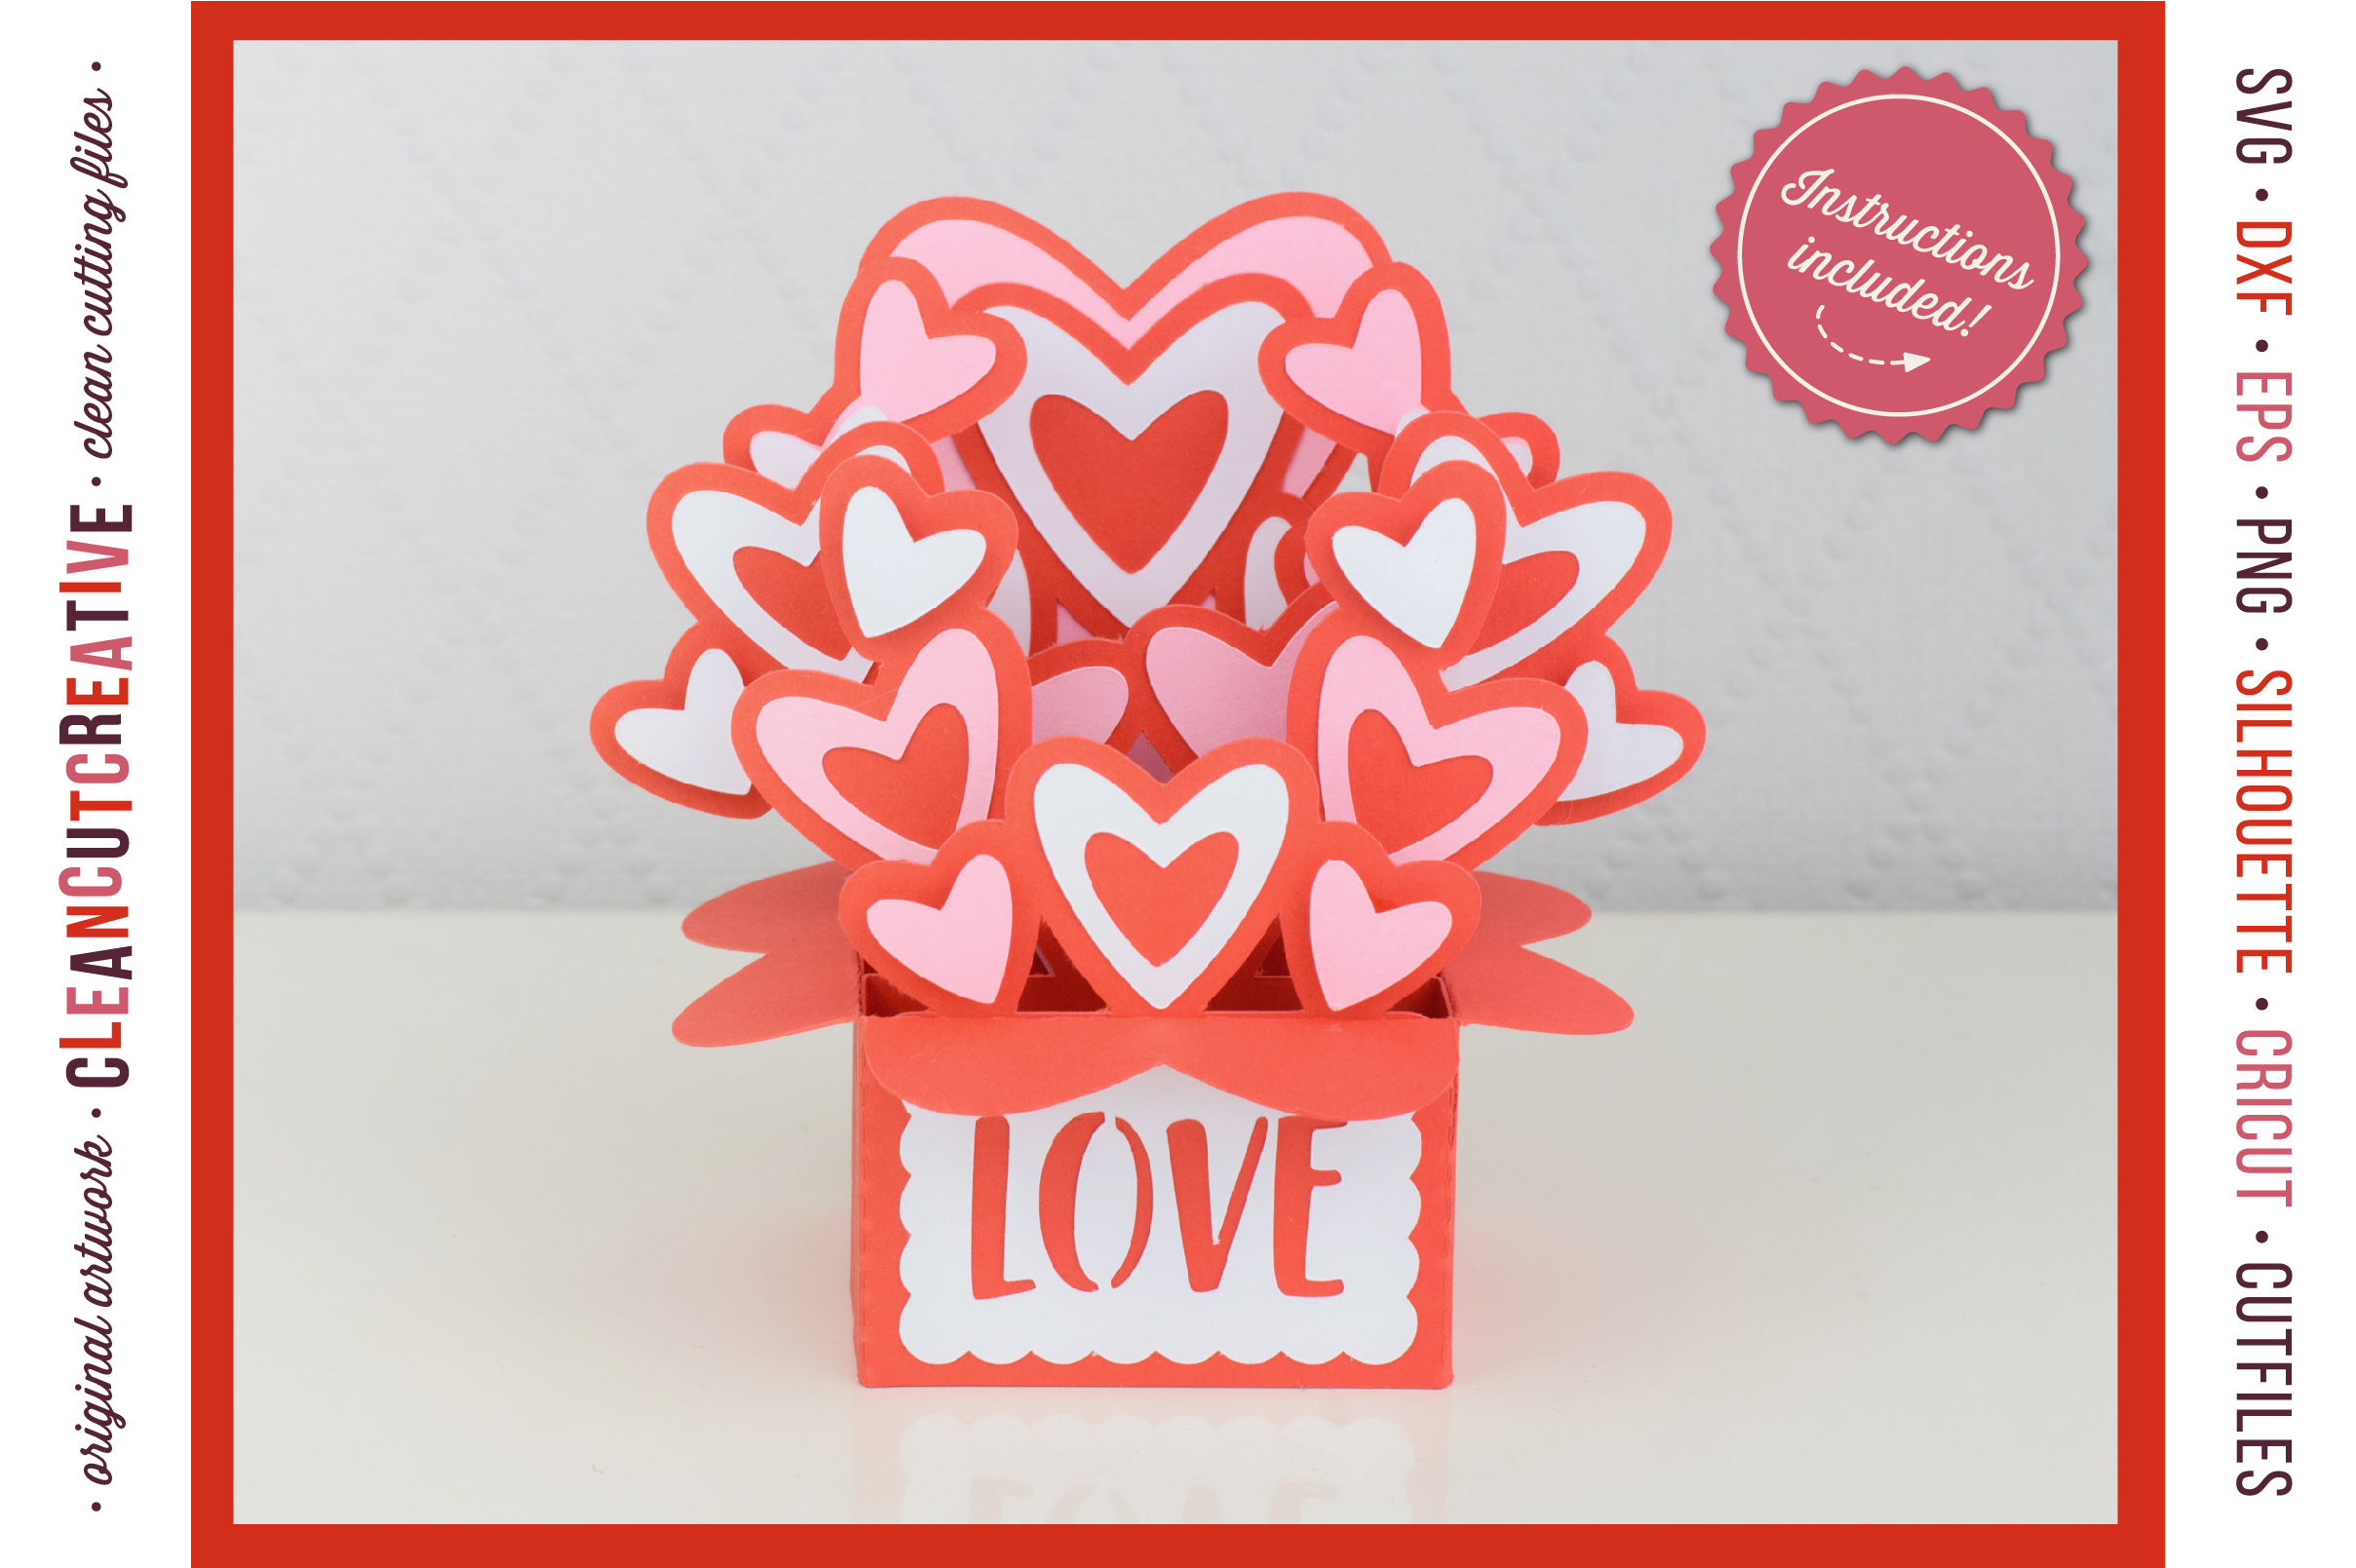 Love Box Card | Valentine Card in a Box with hearts 3D craft example image 1